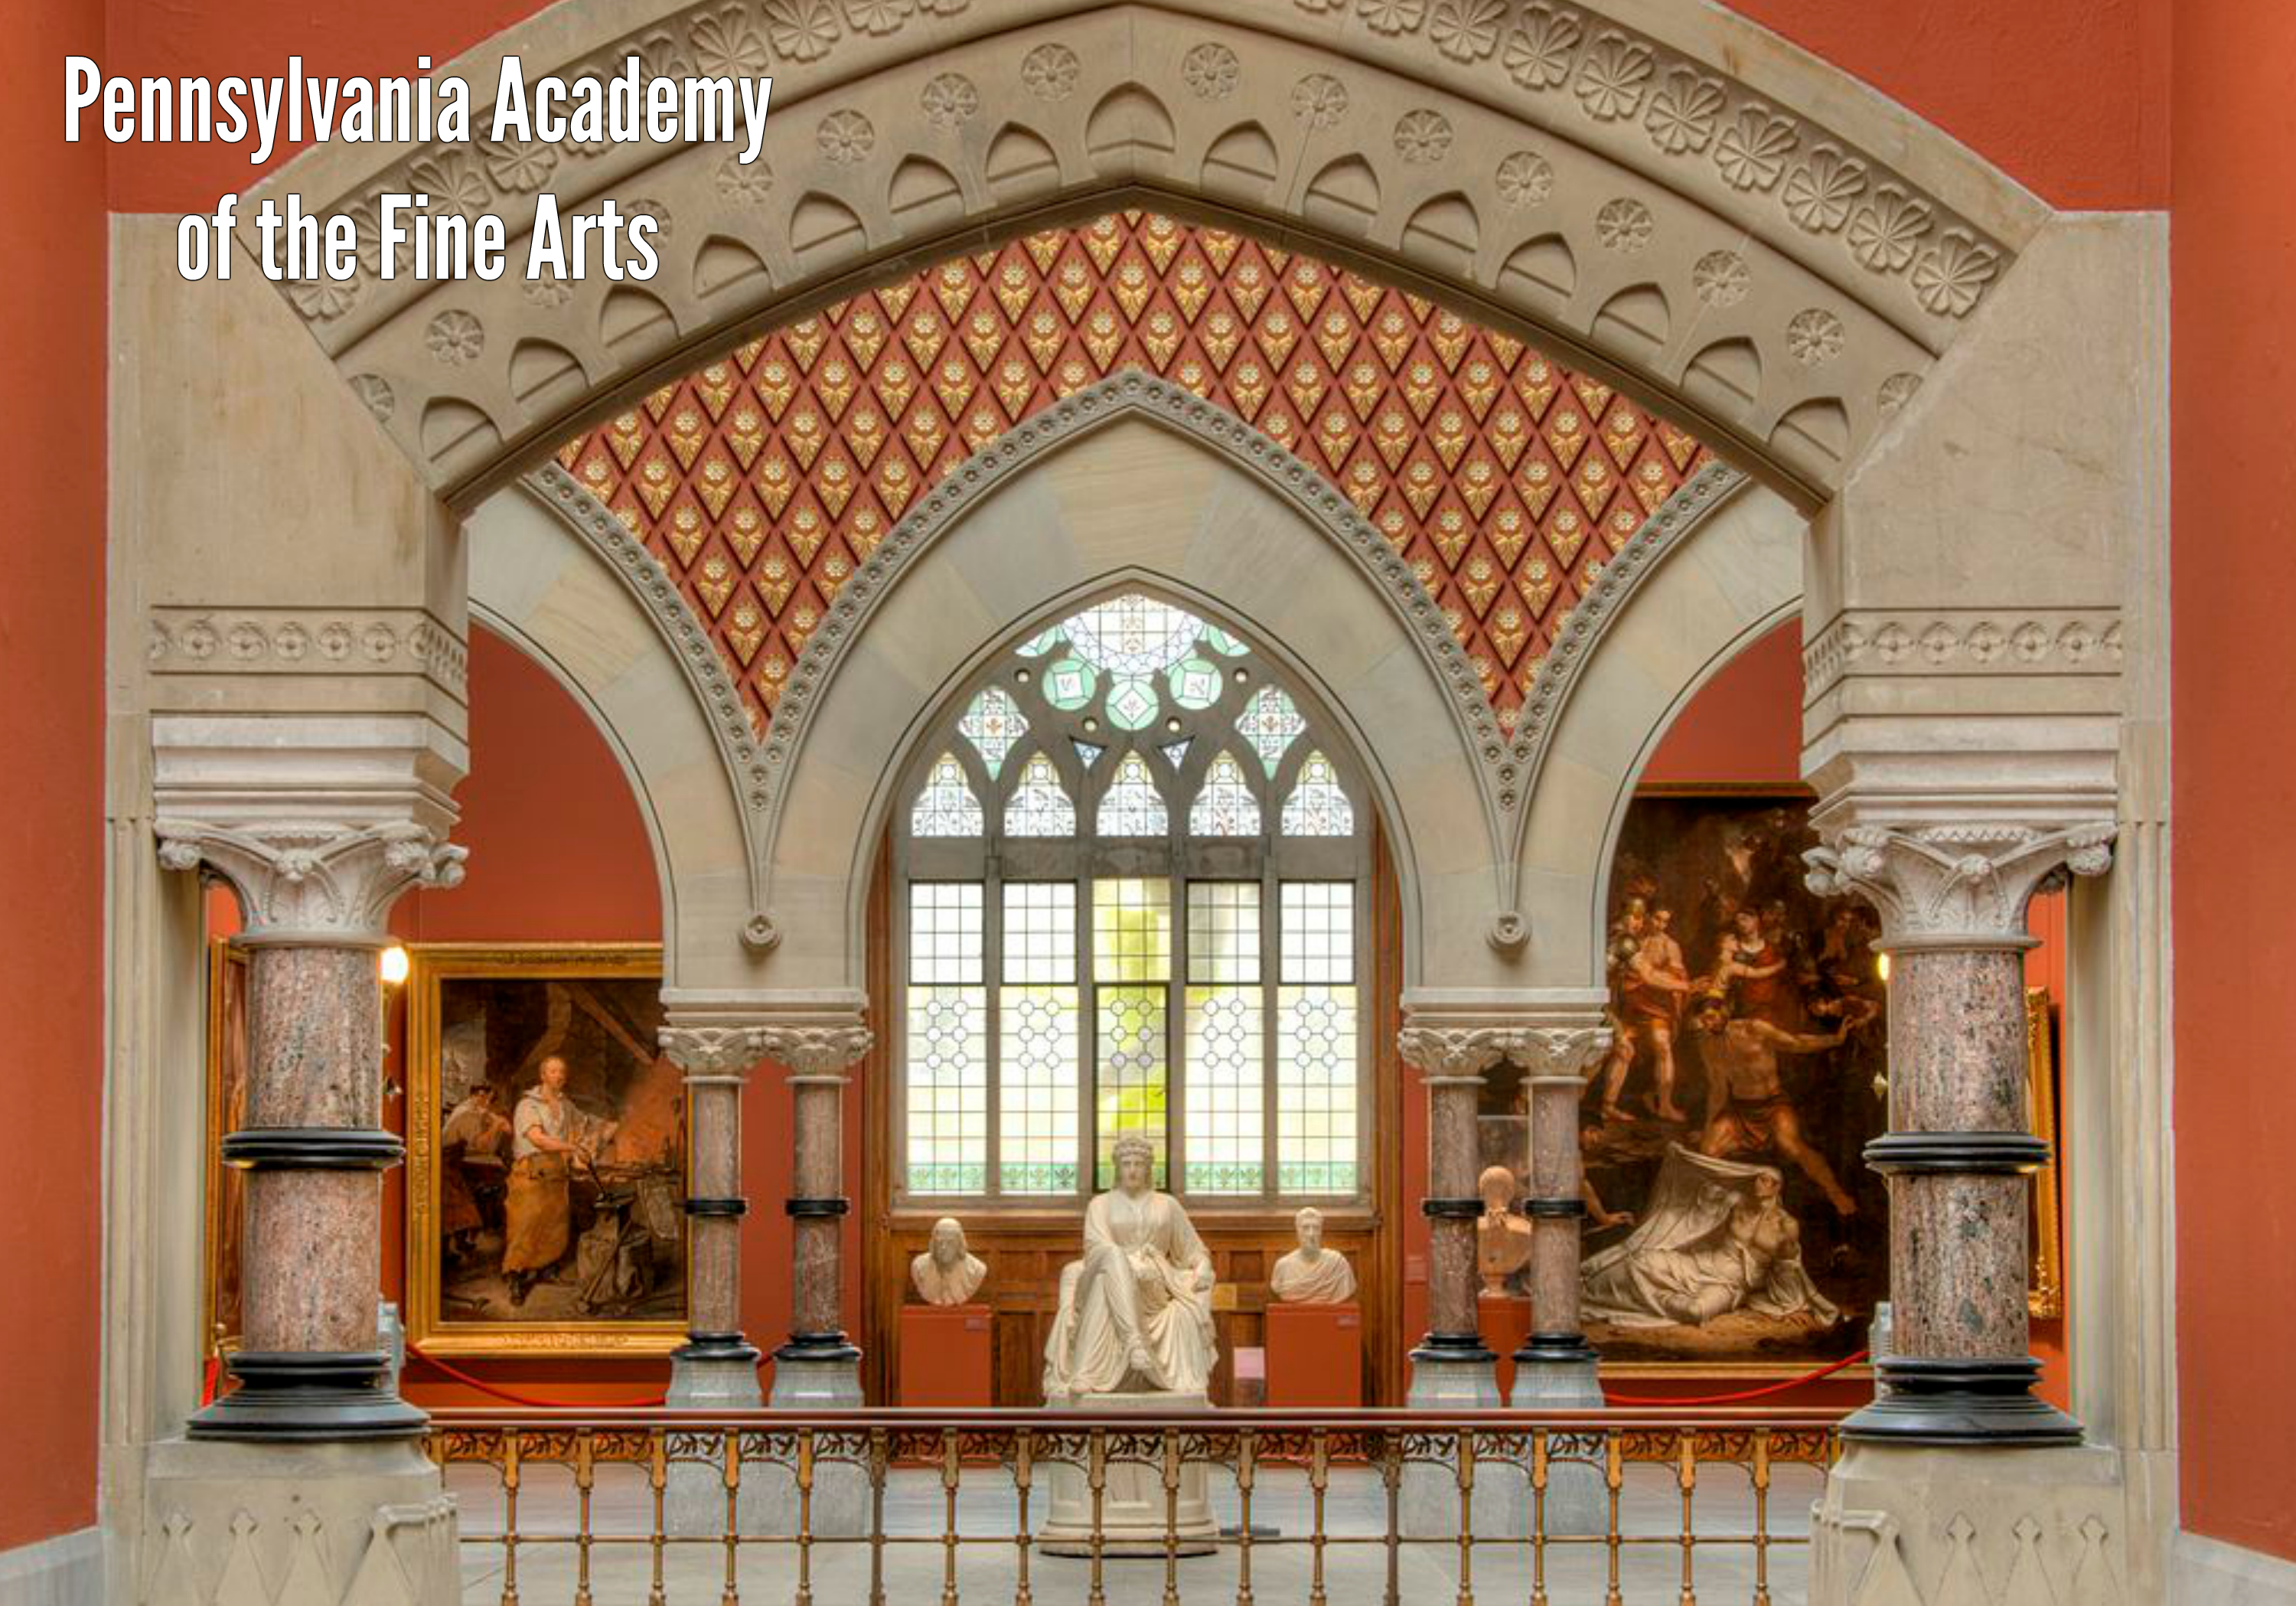 eastfallslocal-pa-academy-of-fine-arts-interior-txt